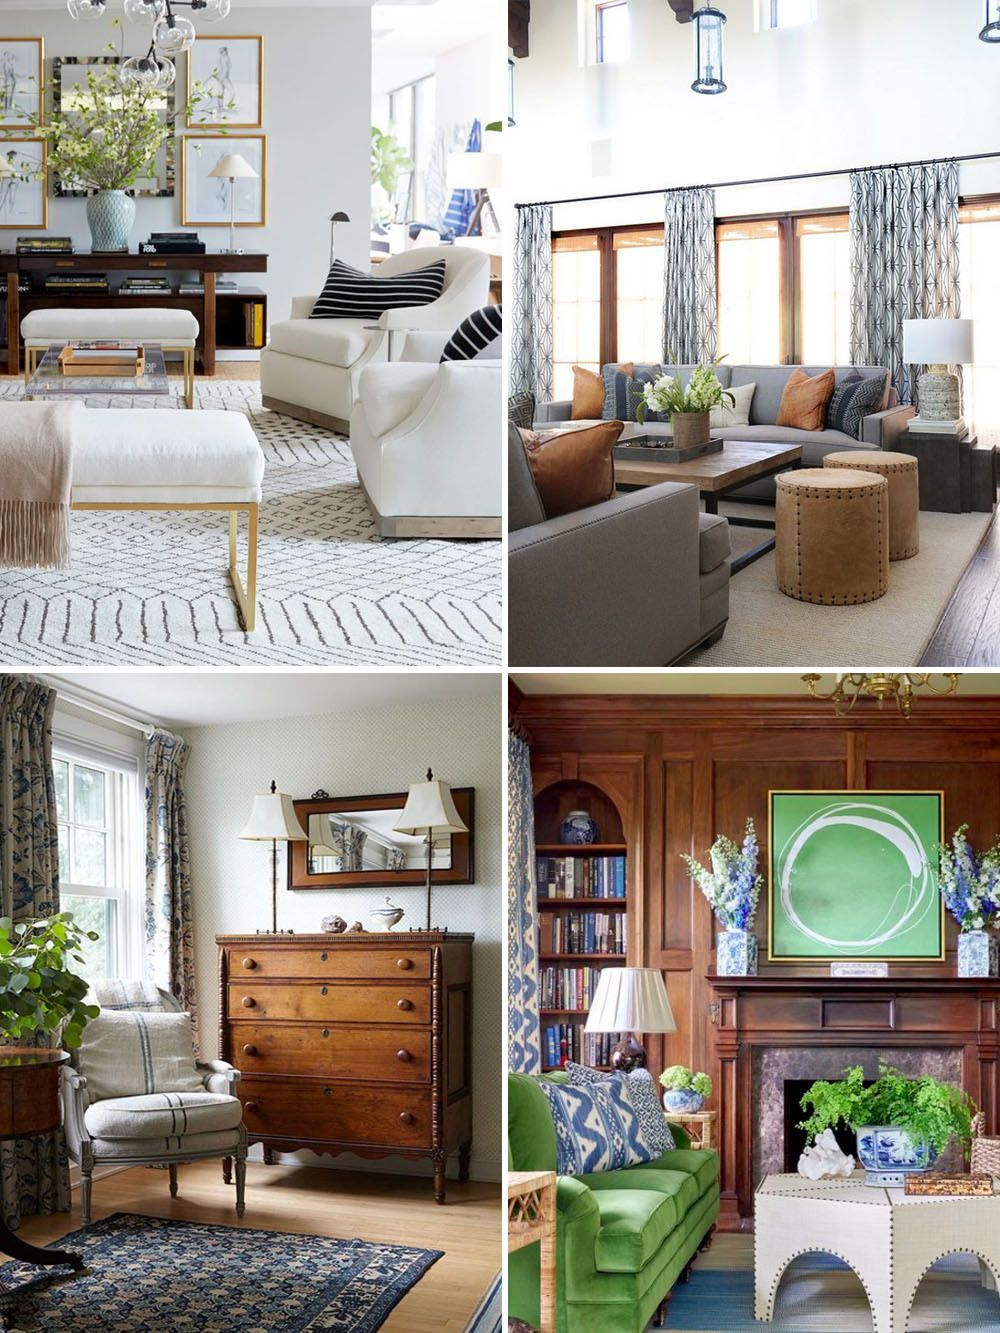 Different house decor styles home decorating ideas for The difference between interior design and home decor